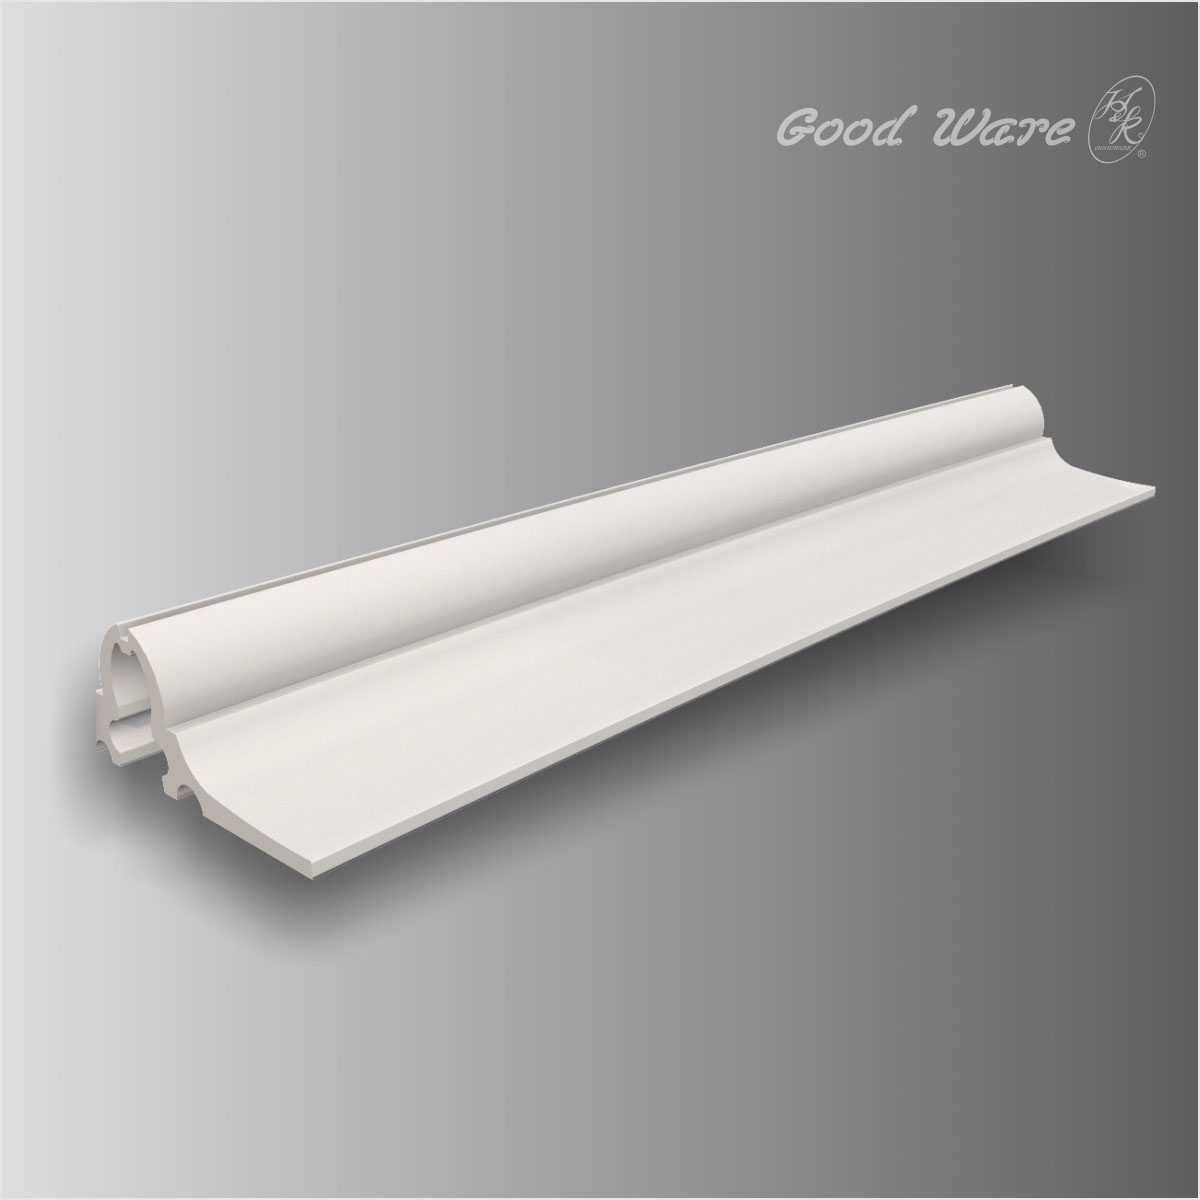 Decorative flexible door trim for sale